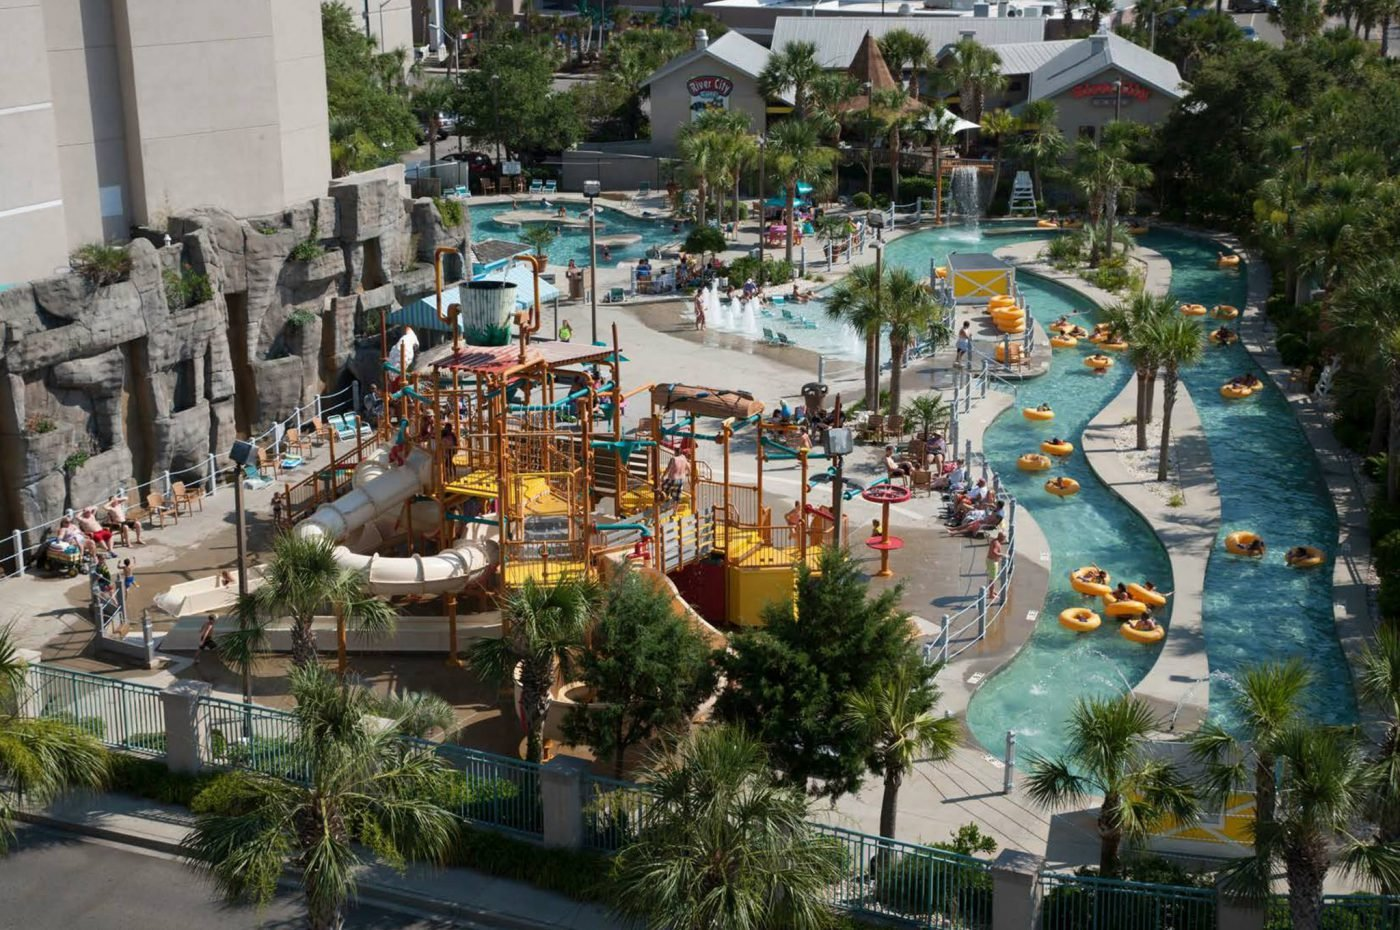 10 Of The Best Hotels With Waterparks In Myrtle Beach